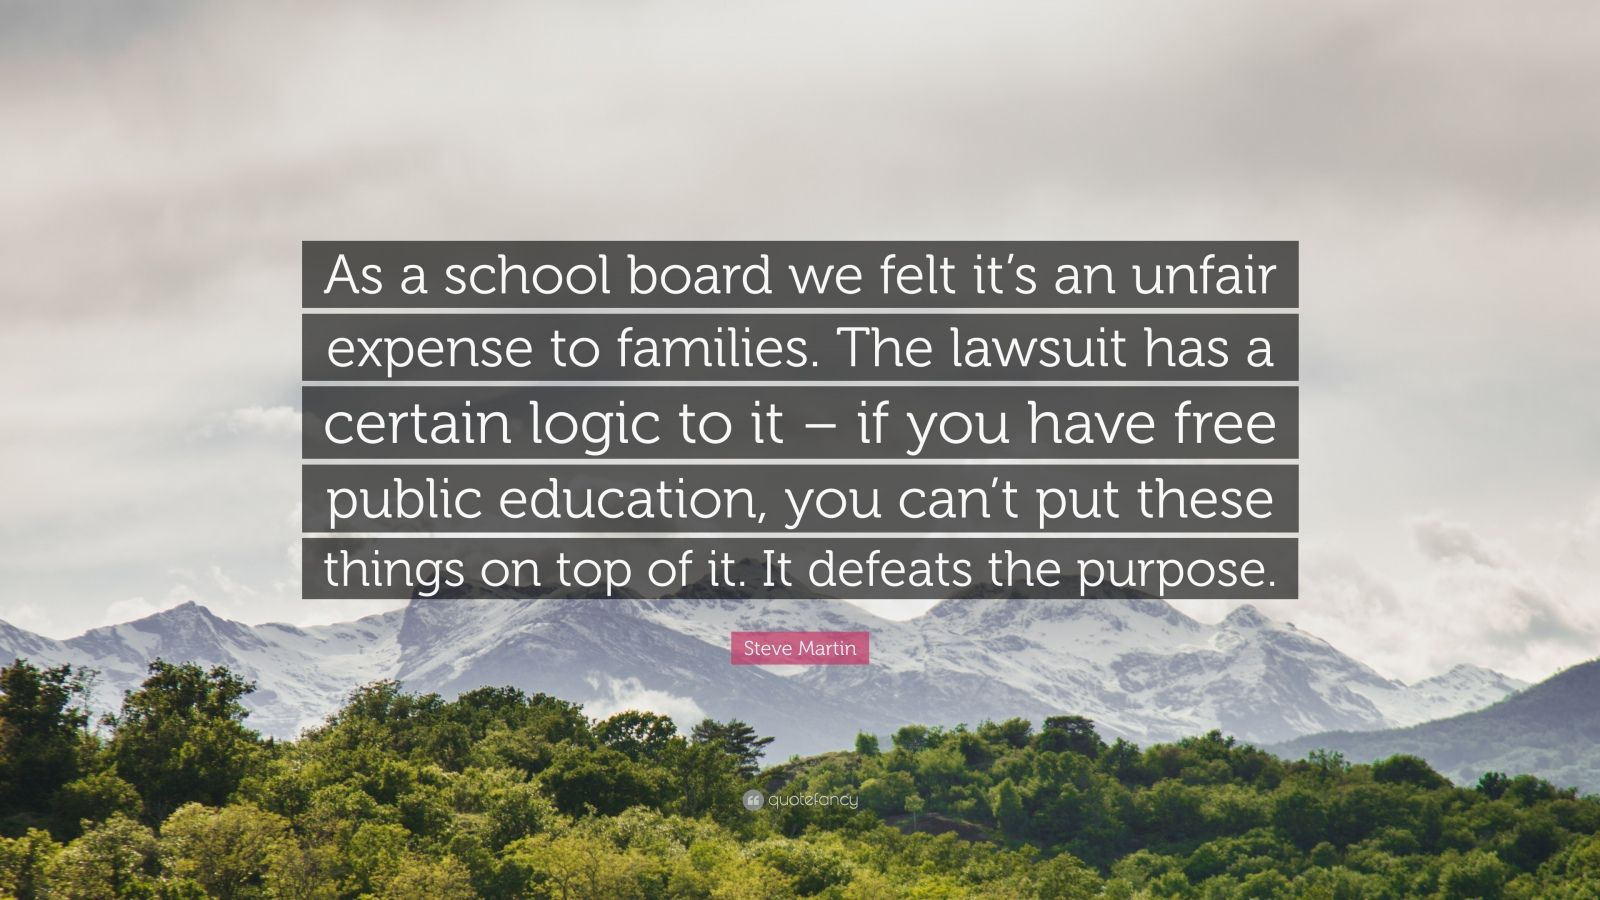 """Steve Martin Quote: """"As a school board we felt it's an unfair expense to families. The lawsuit has a certain logic to it – if you have free public education, you can't put these things on top of it. It defeats the purpose."""""""